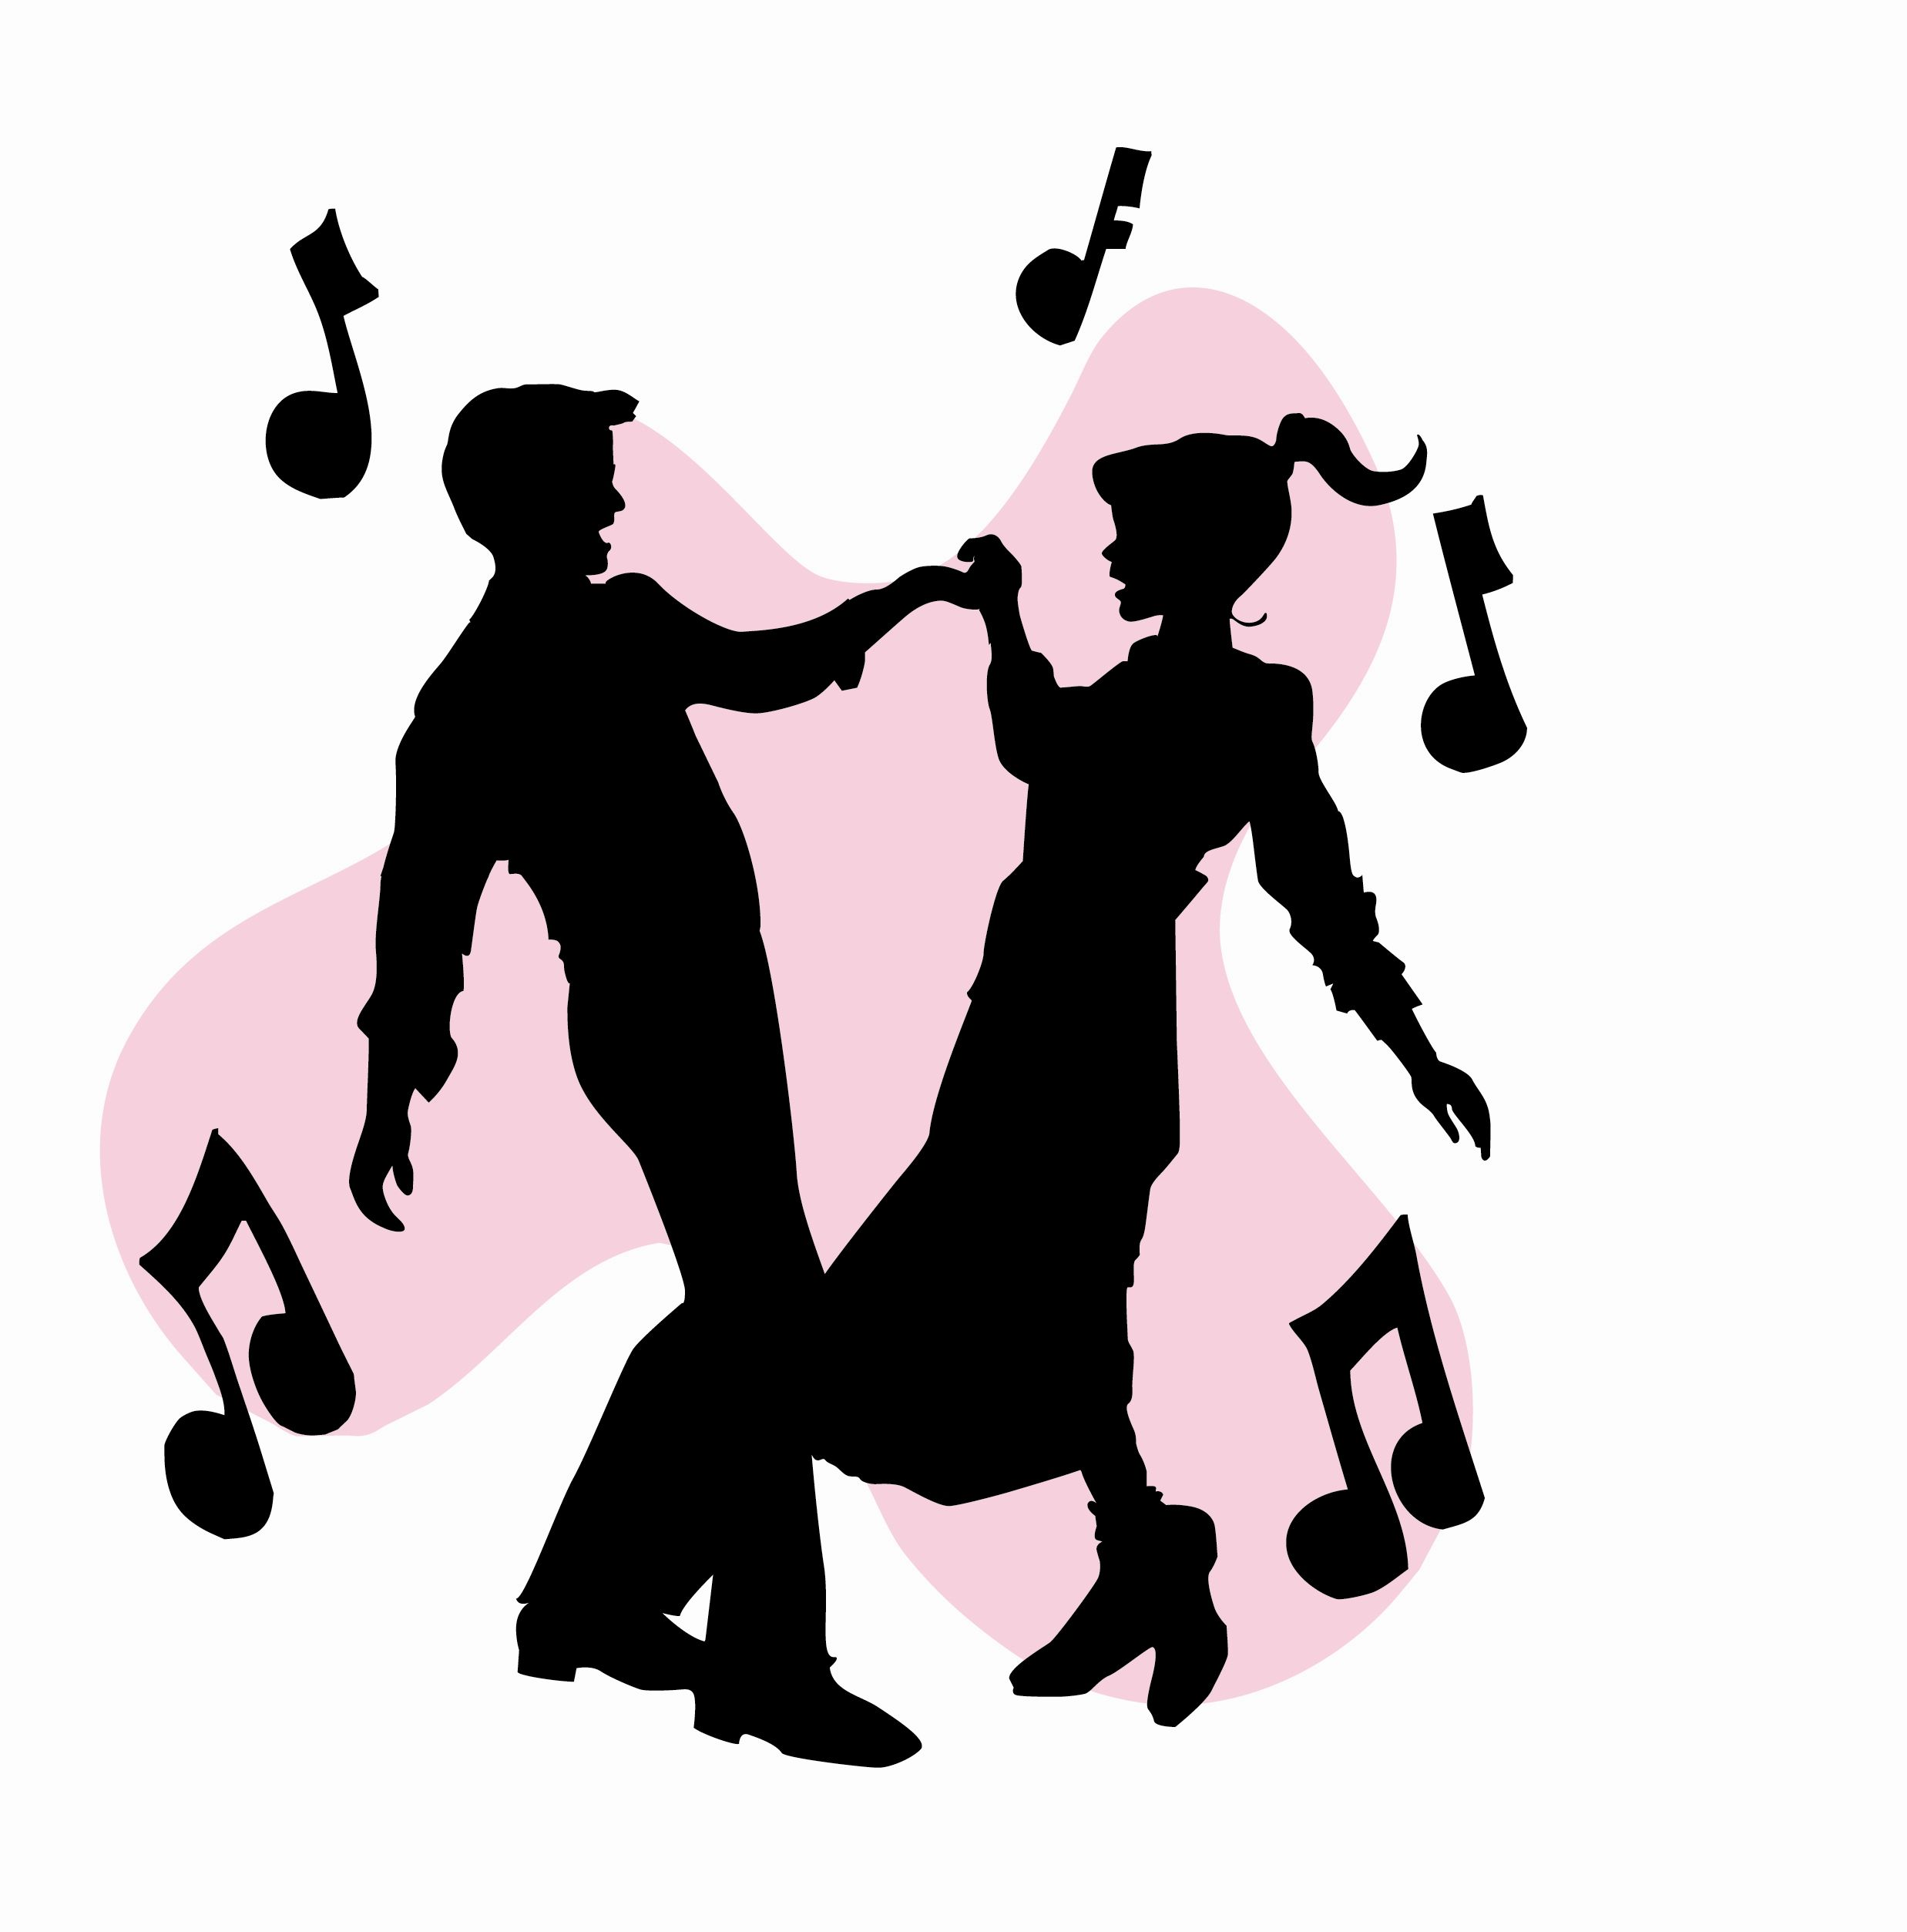 50s sock hop dancers silhouettes clipart homecoming ideas rh pinterest com free 50's sock hop clipart sock hop clipart free